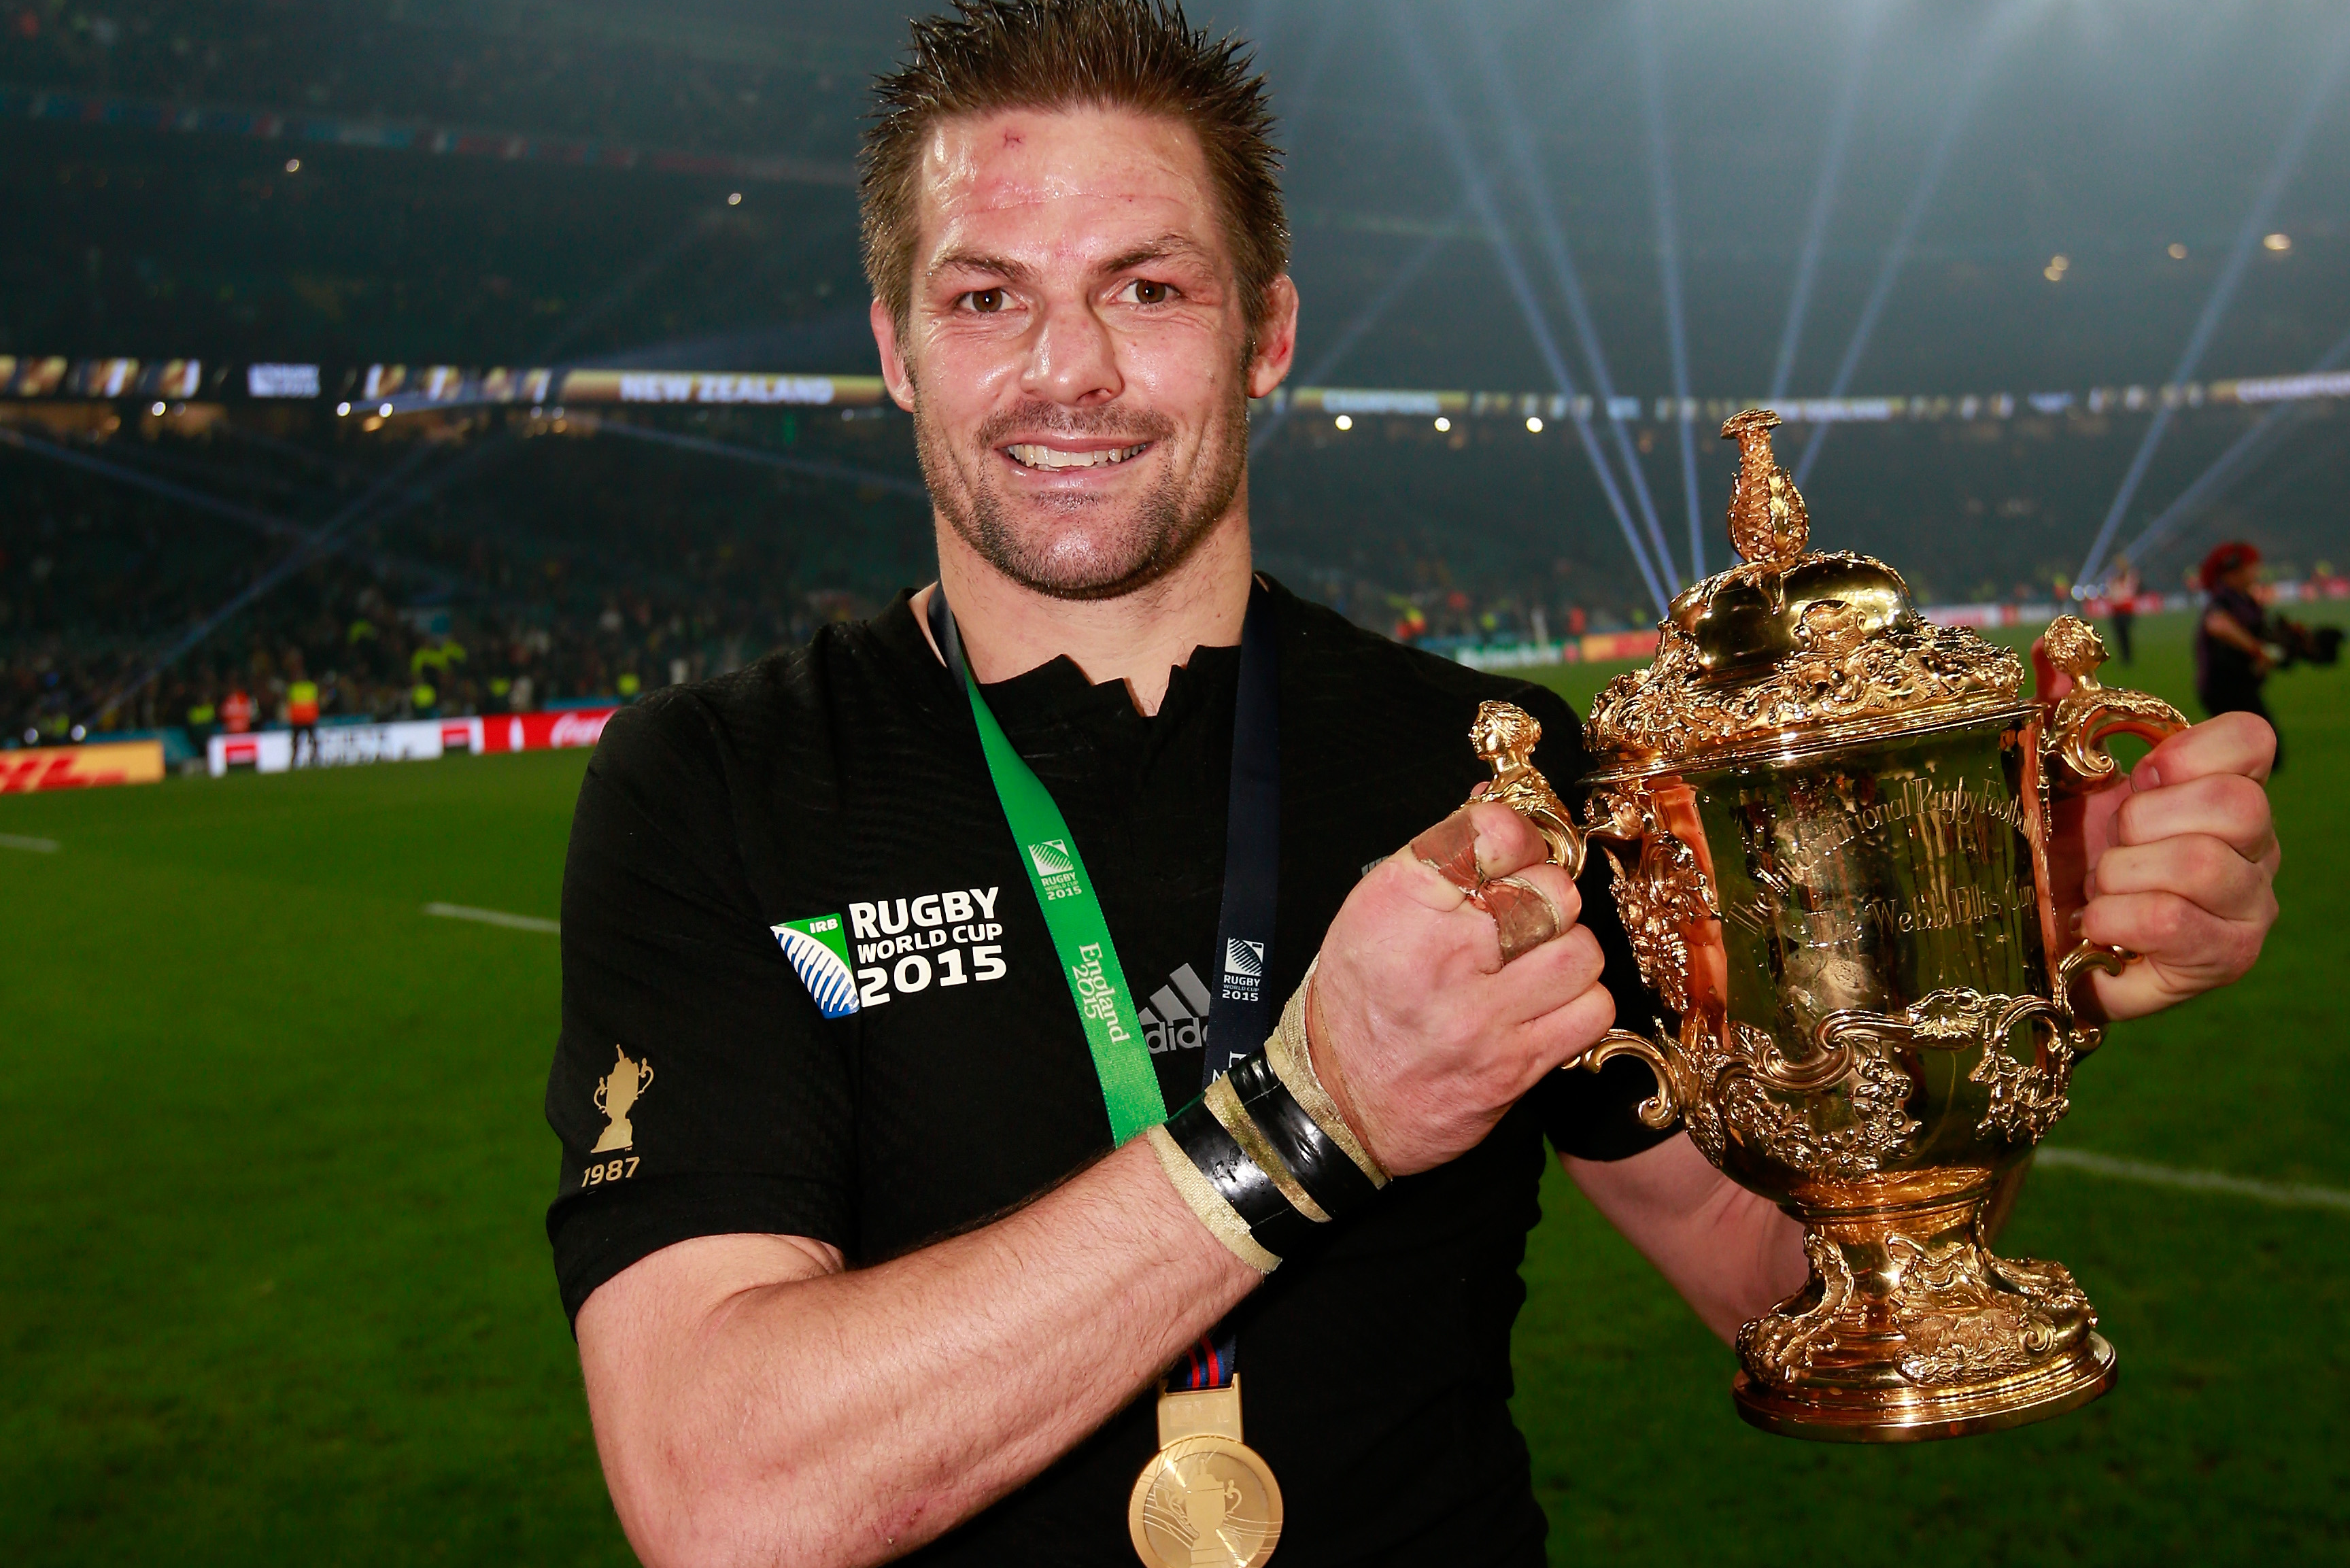 New Zealand's Richie McCaw named player of the decade